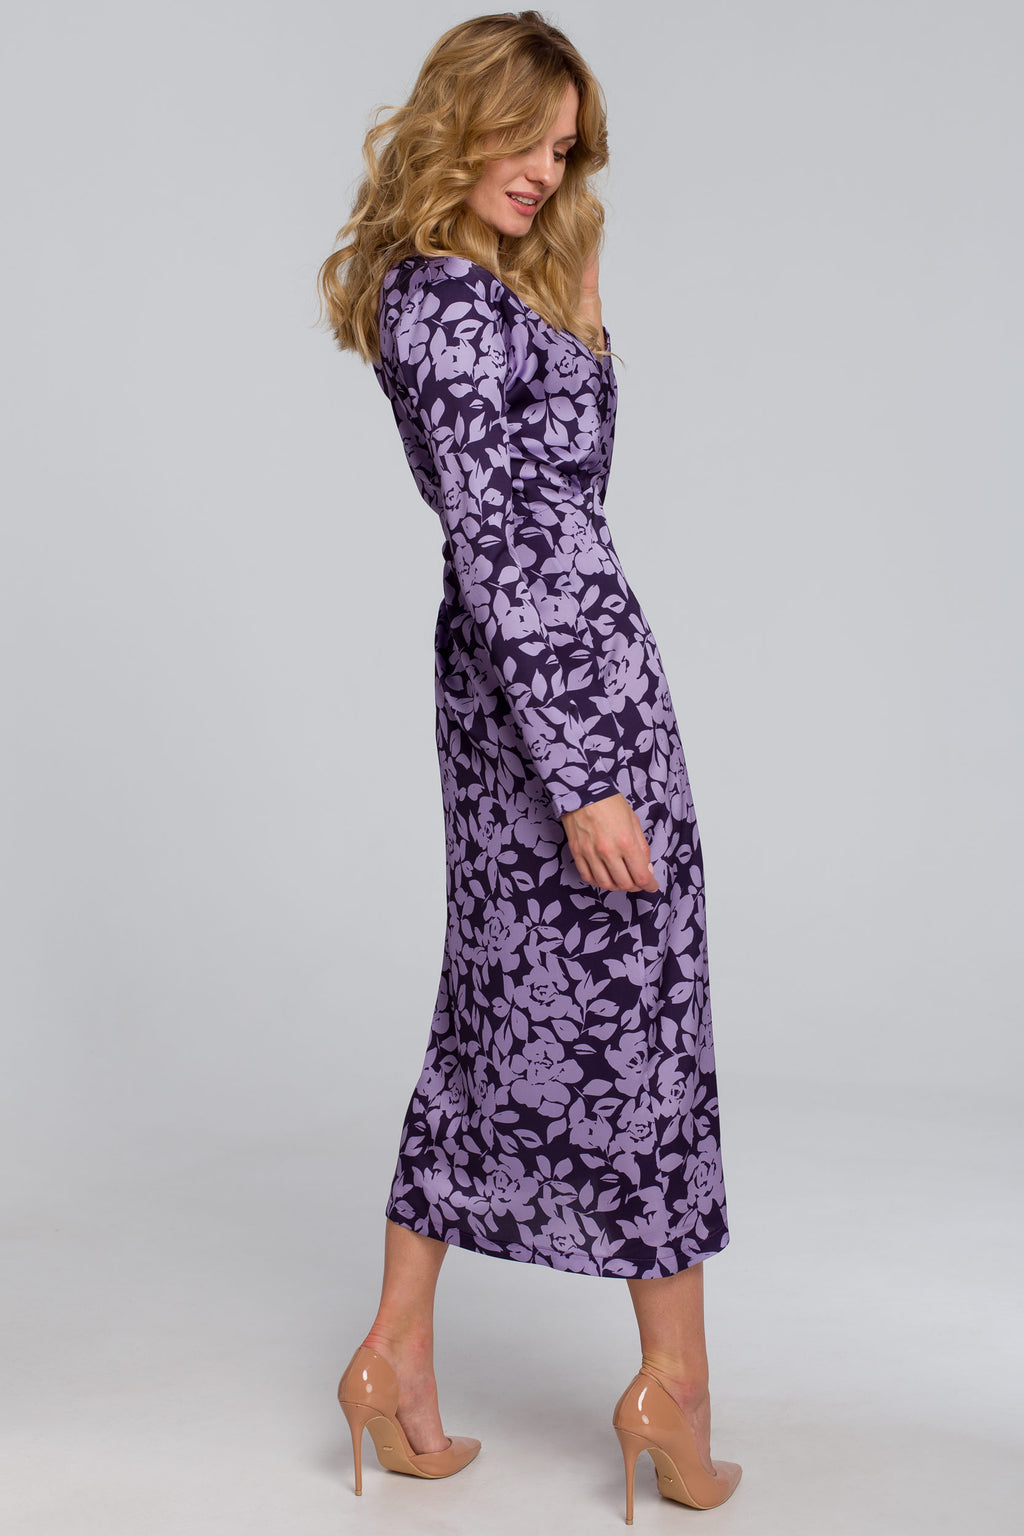 Purple Floral Midi Wrap Dress - So Chic Boutique